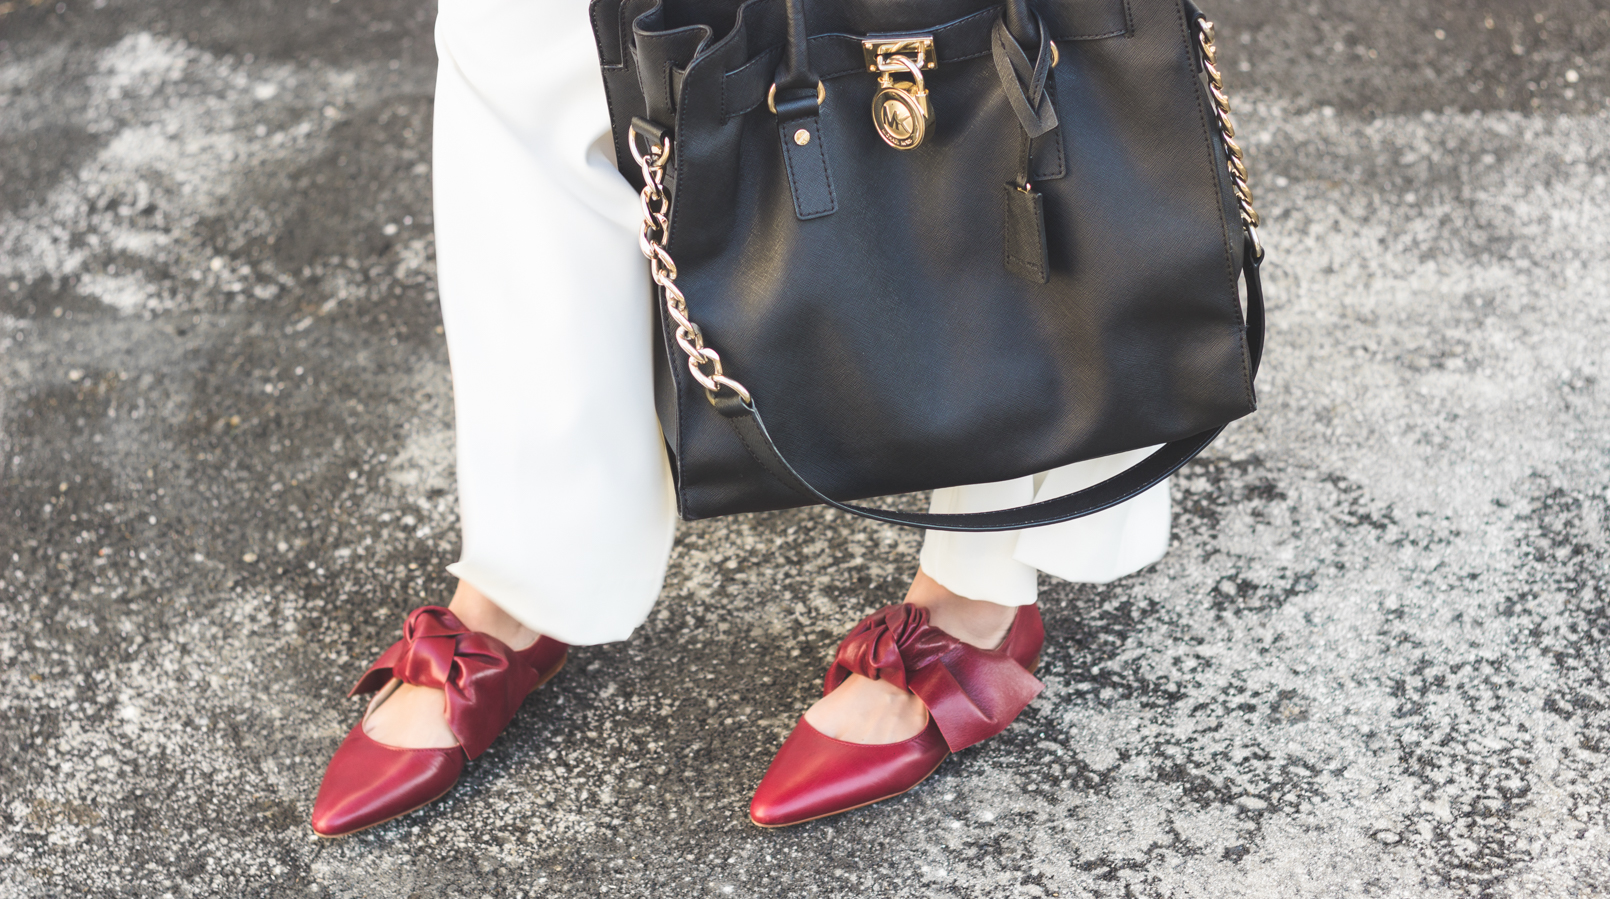 Le Fashionaire My 5 golden rules for buying on sales white oversized flares splits trousers gold buttons zara pointy red bow leather zara shoes hamilton black bag gold details michael kors red lipstick 9130F EN